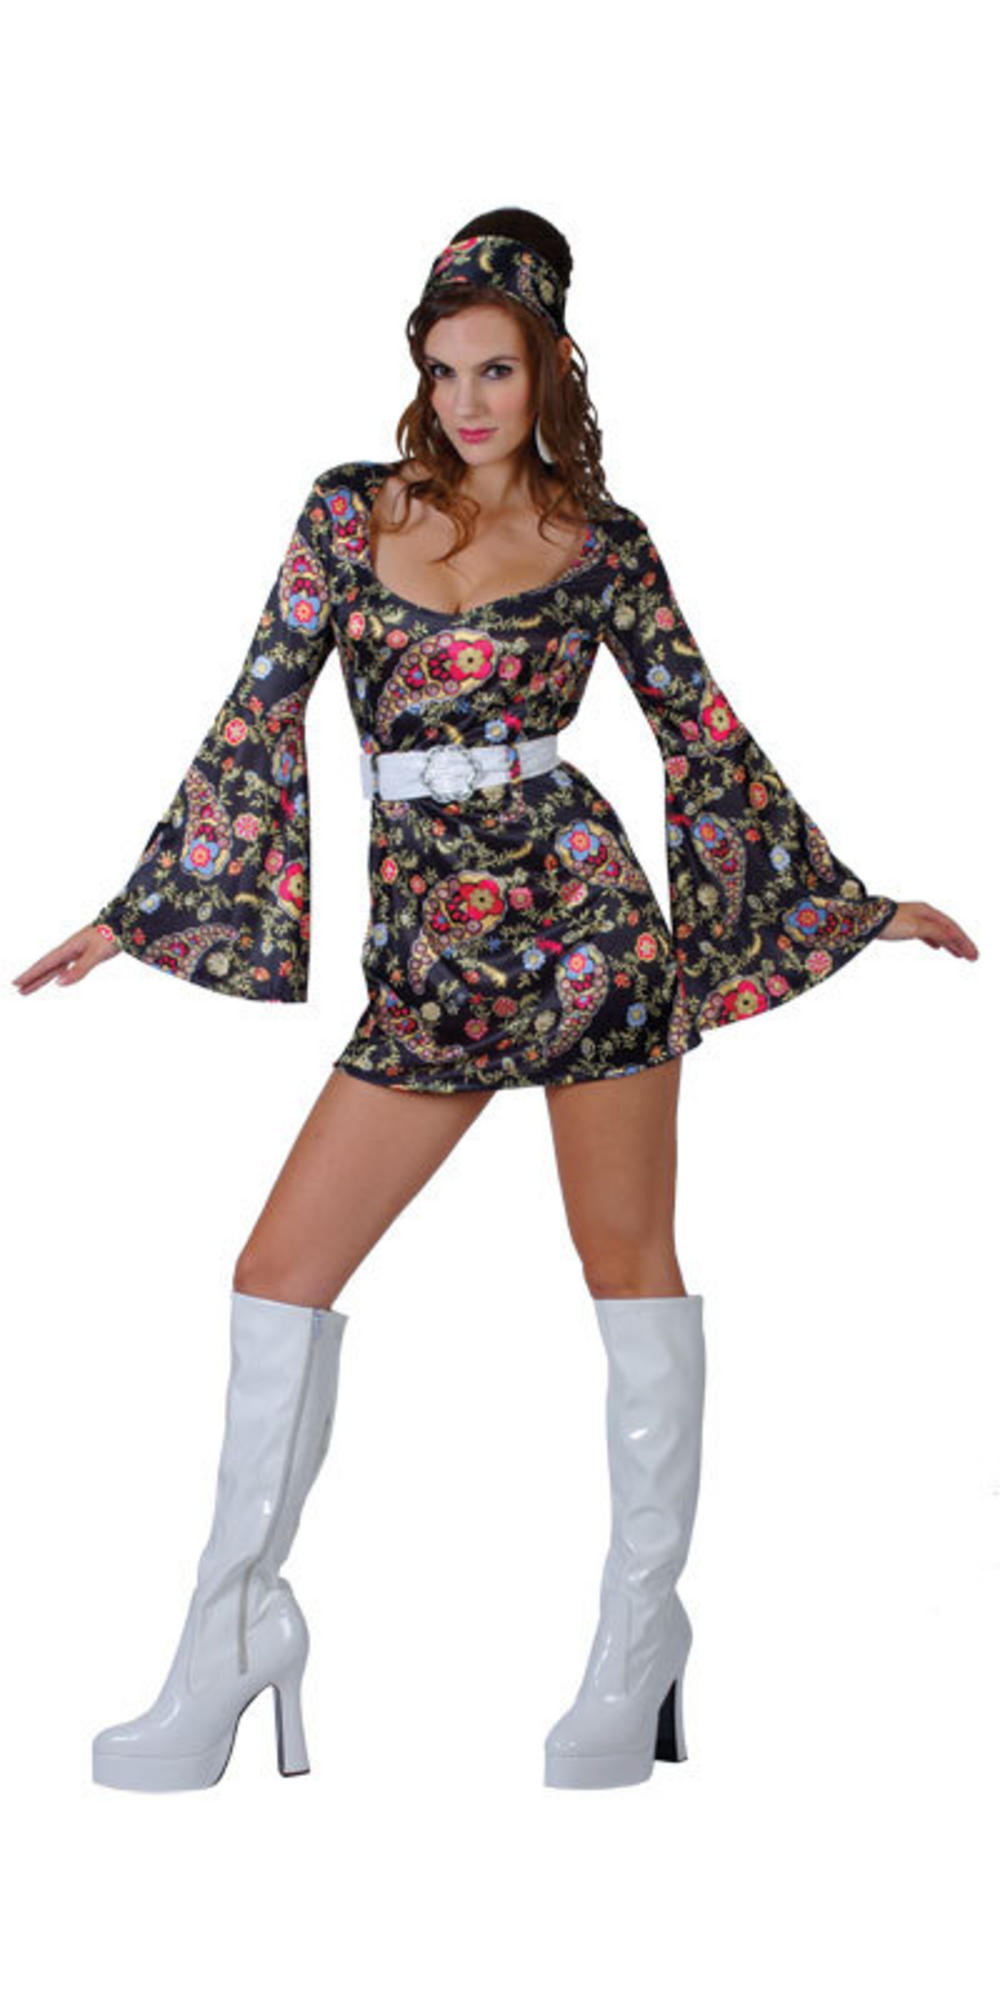 Ladiesu0026#39; 1960s Retro Hippy Girl Fancy Dress Costume | All Ladies Costumes | Mega Fancy Dress